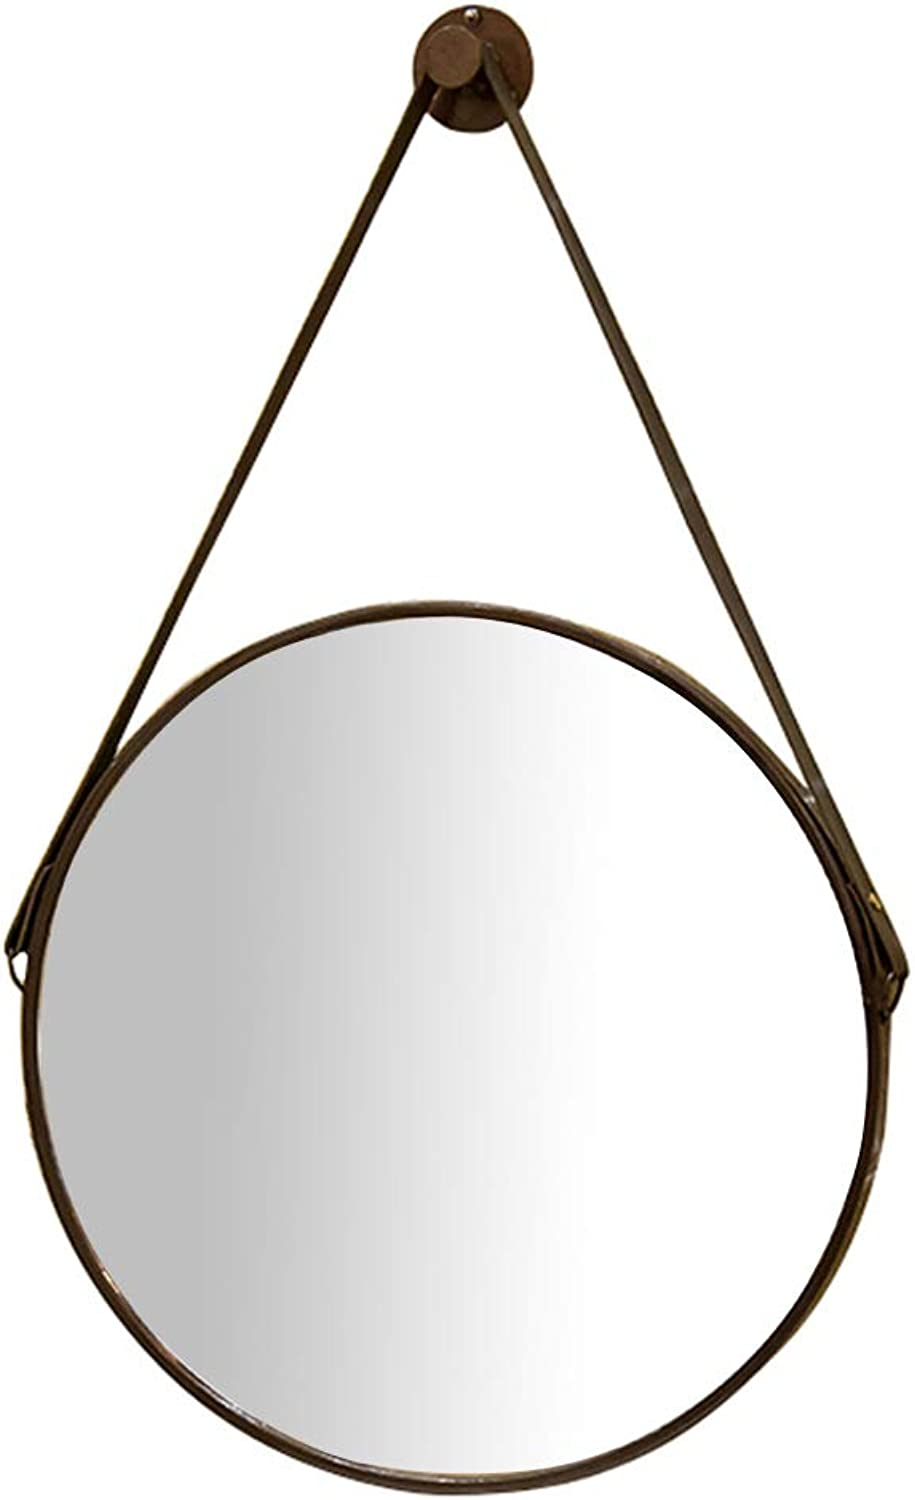 Wall Mirror, Round Vanity Mirror with Brown Leather Hanging Strap Wall Mount Makeup and Shaving Mirror, Large Circle Bathroom Decorative Wall Mirror